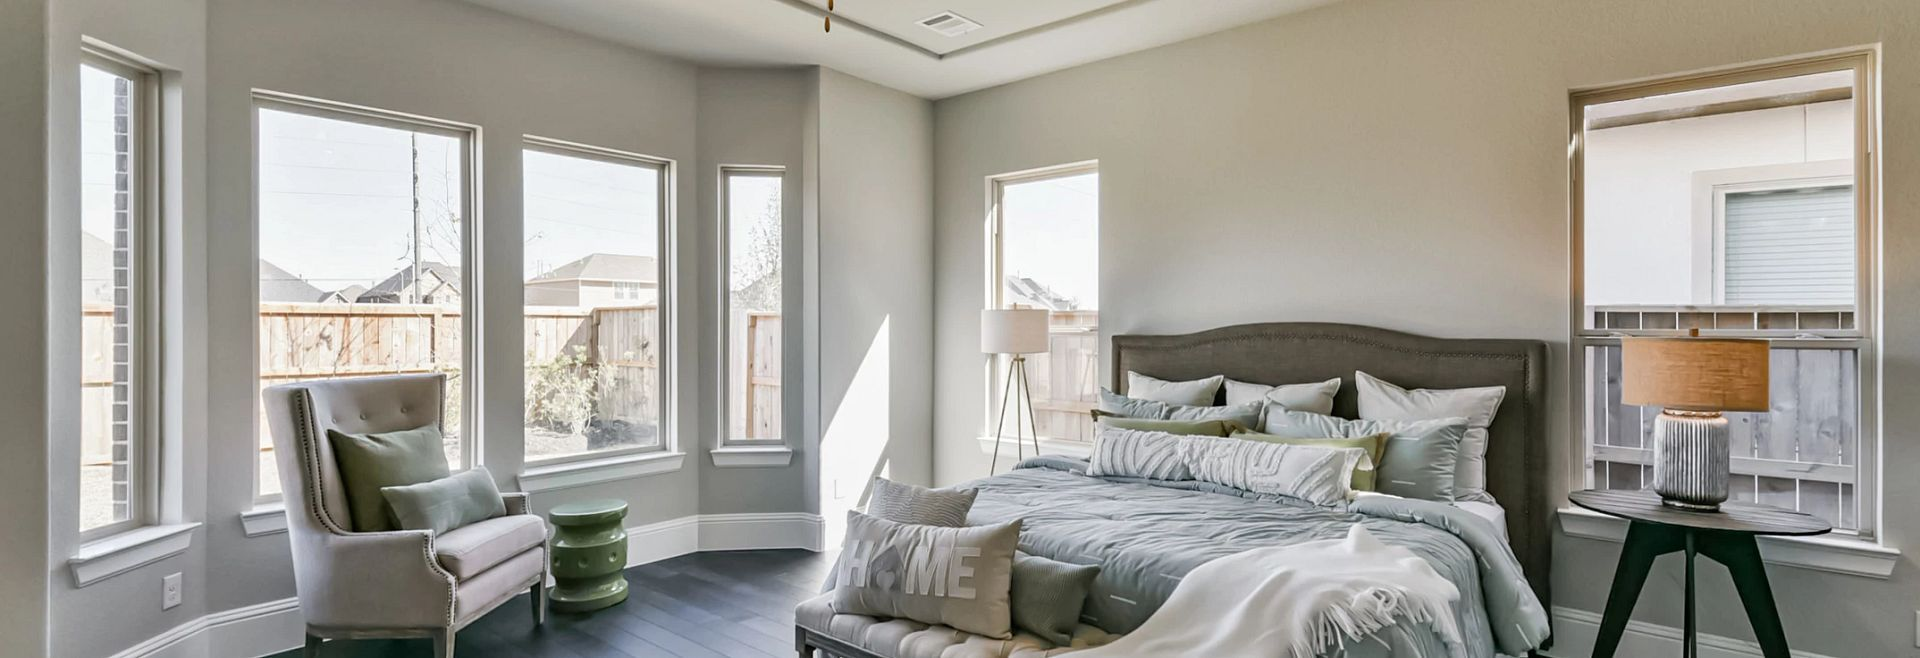 Bedroom featured in the Plan 6015 By Shea Homes in Houston, TX